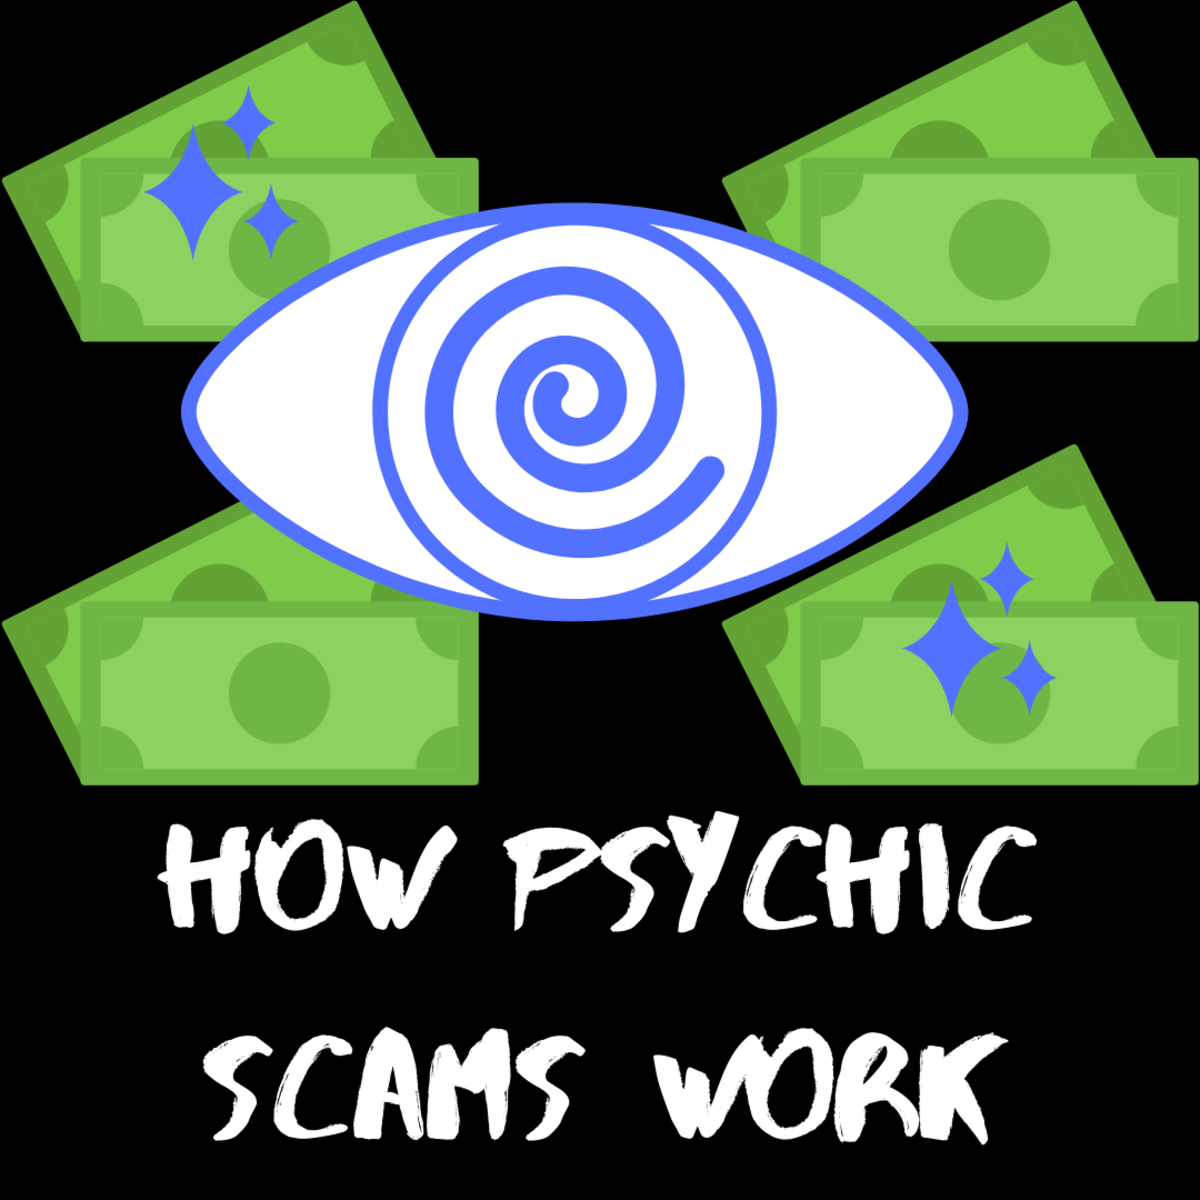 Read on to learn how psychic scams work.